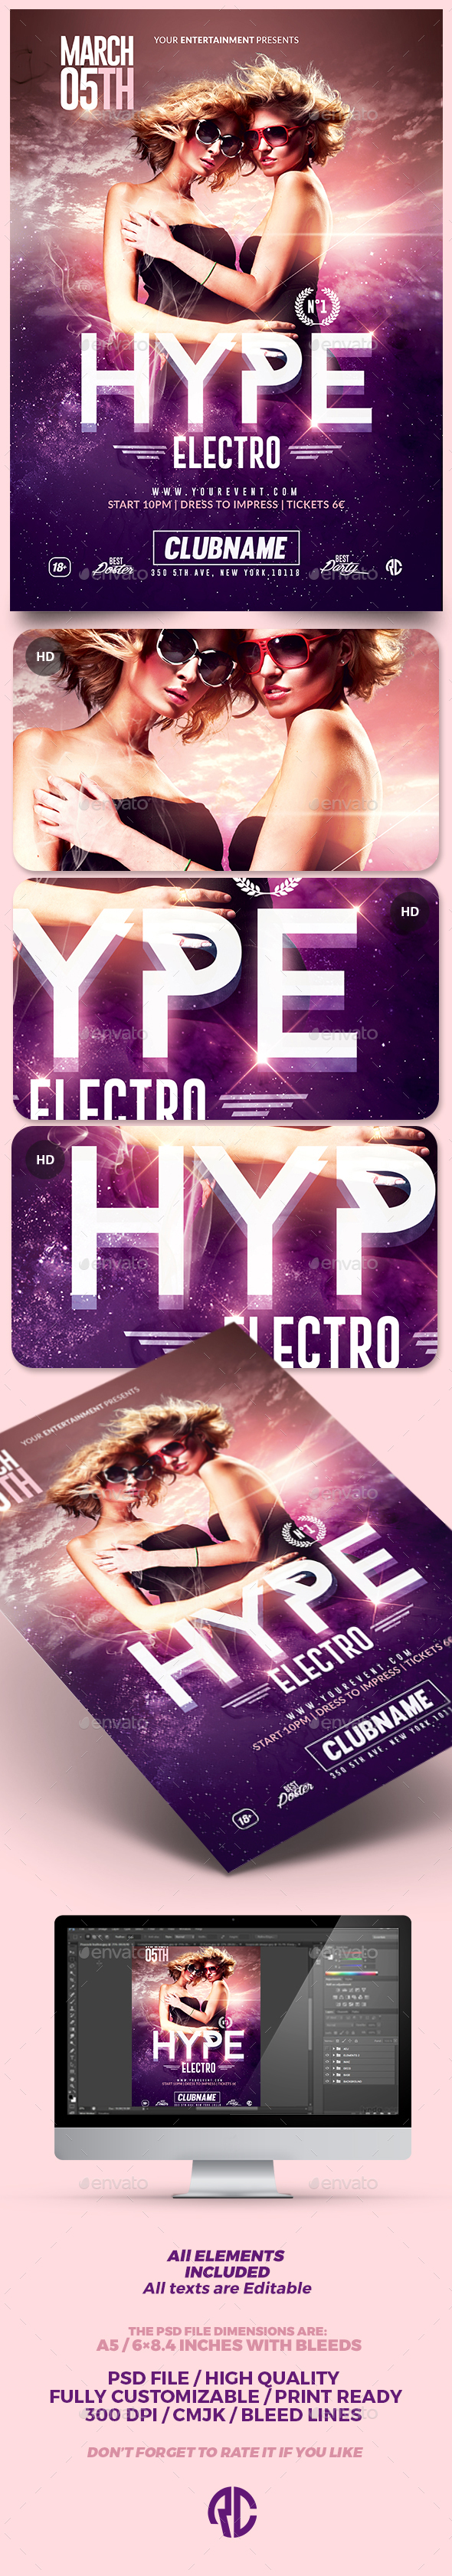 Hype Electro Flyer | Psd Template - Clubs & Parties Events